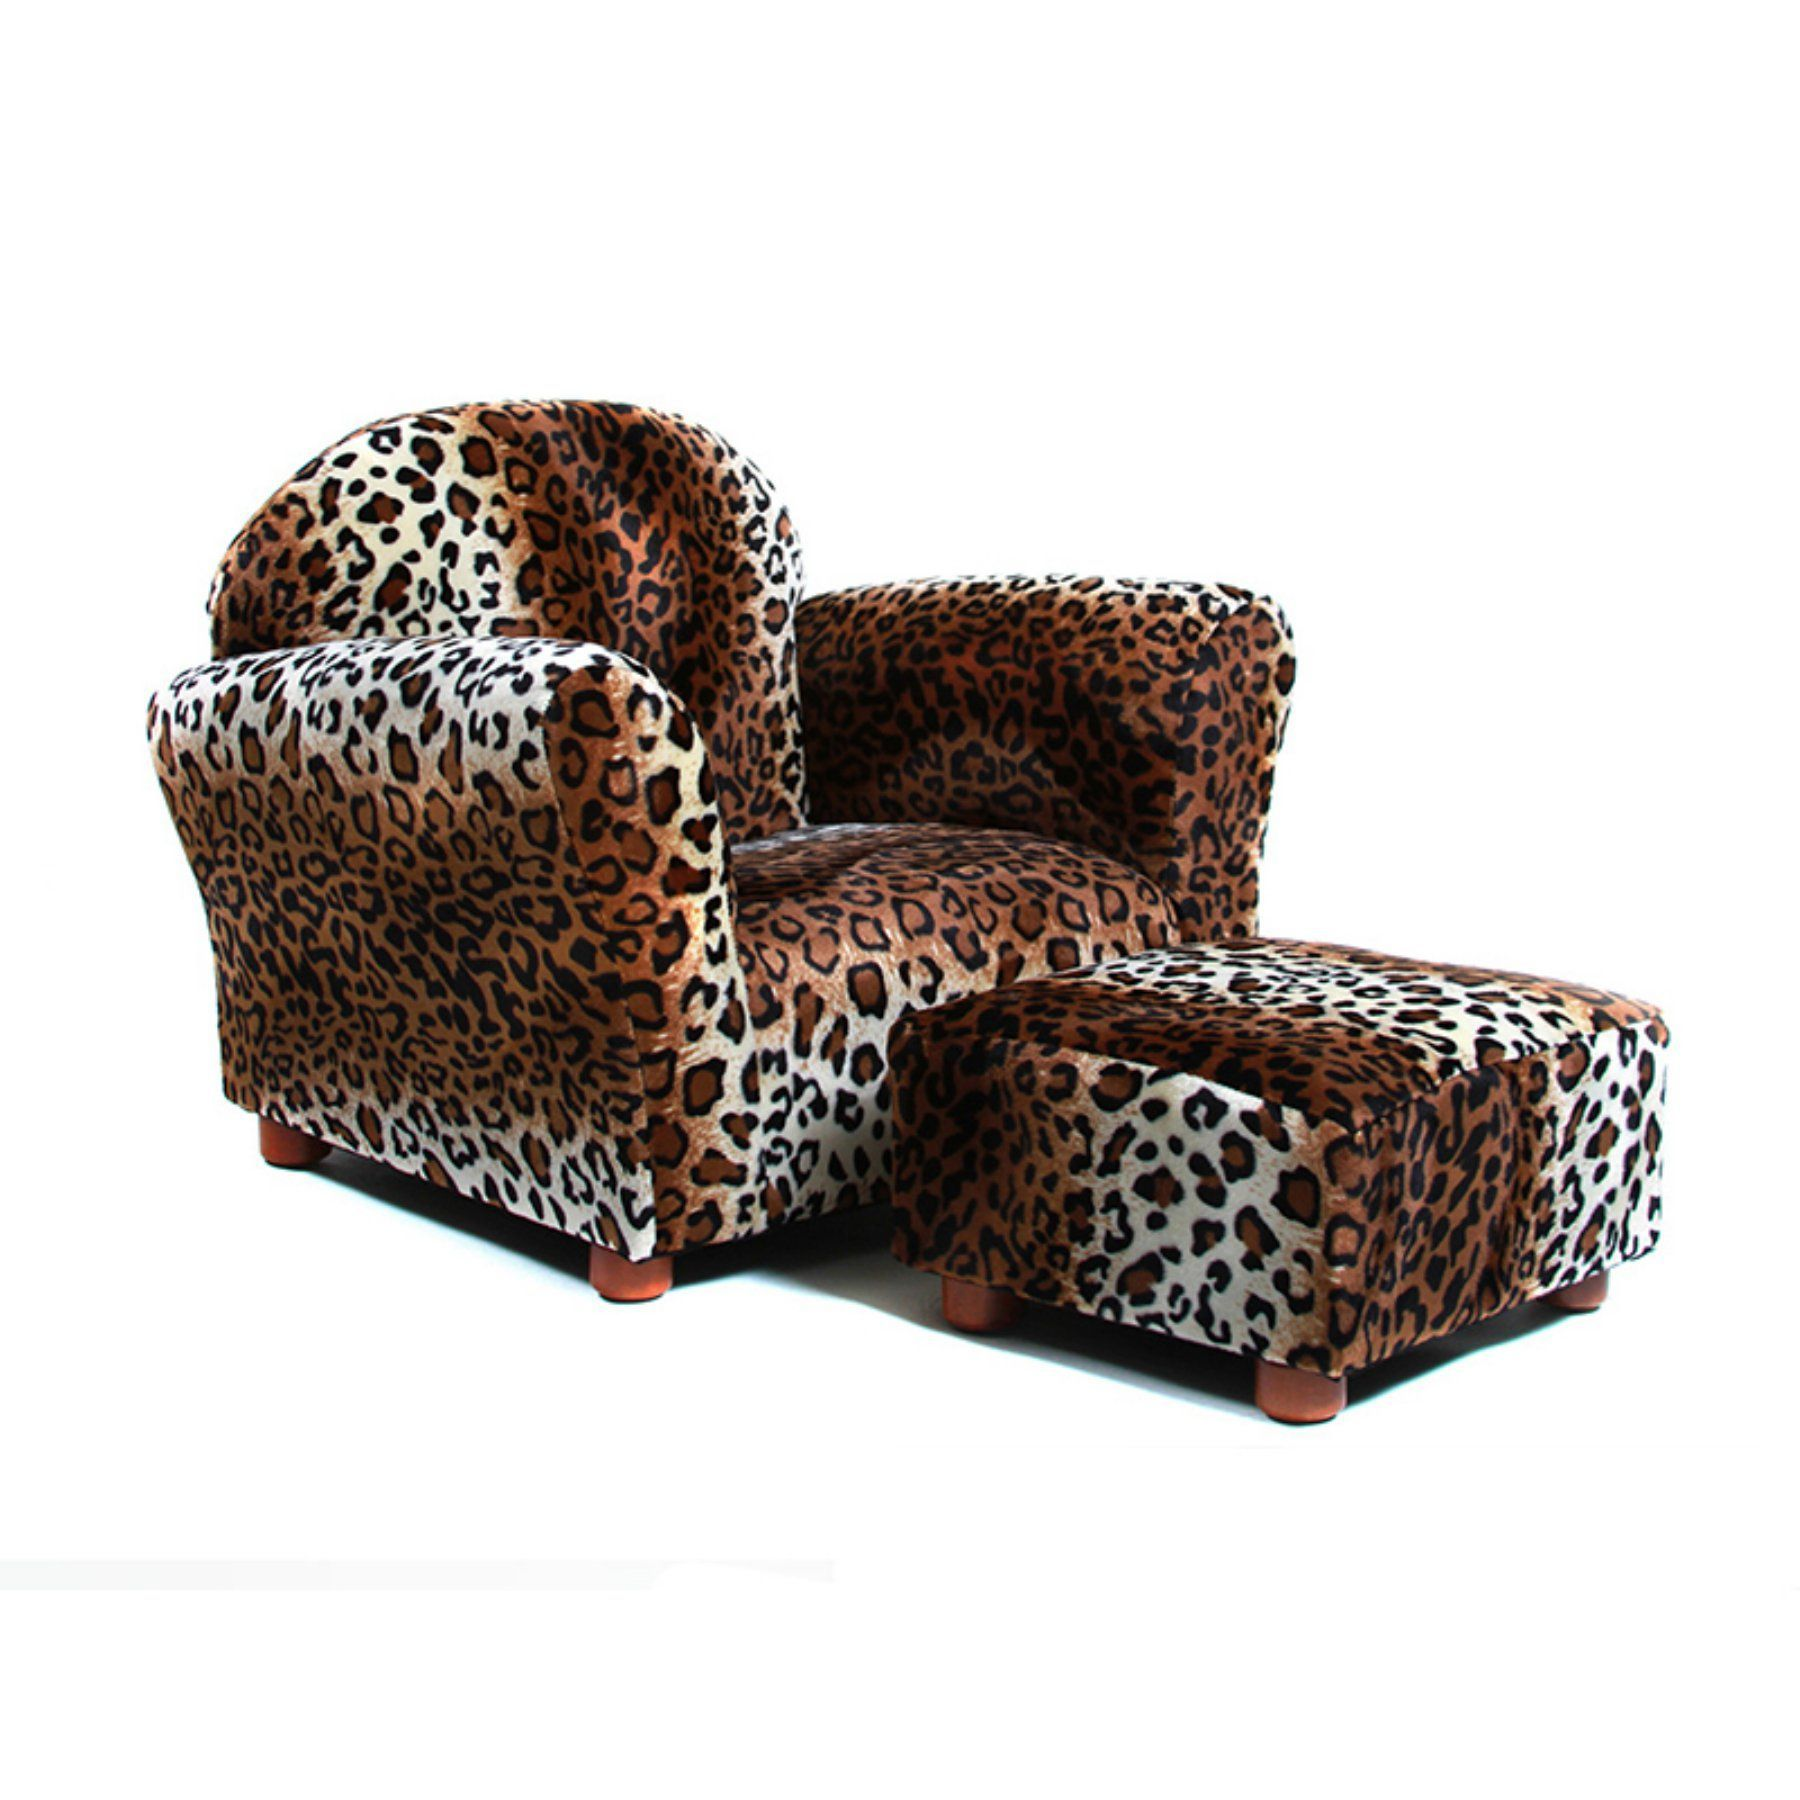 Kids Chair With Ottoman Black Panther Throne Keet Roundy Leopard Cr22 Products